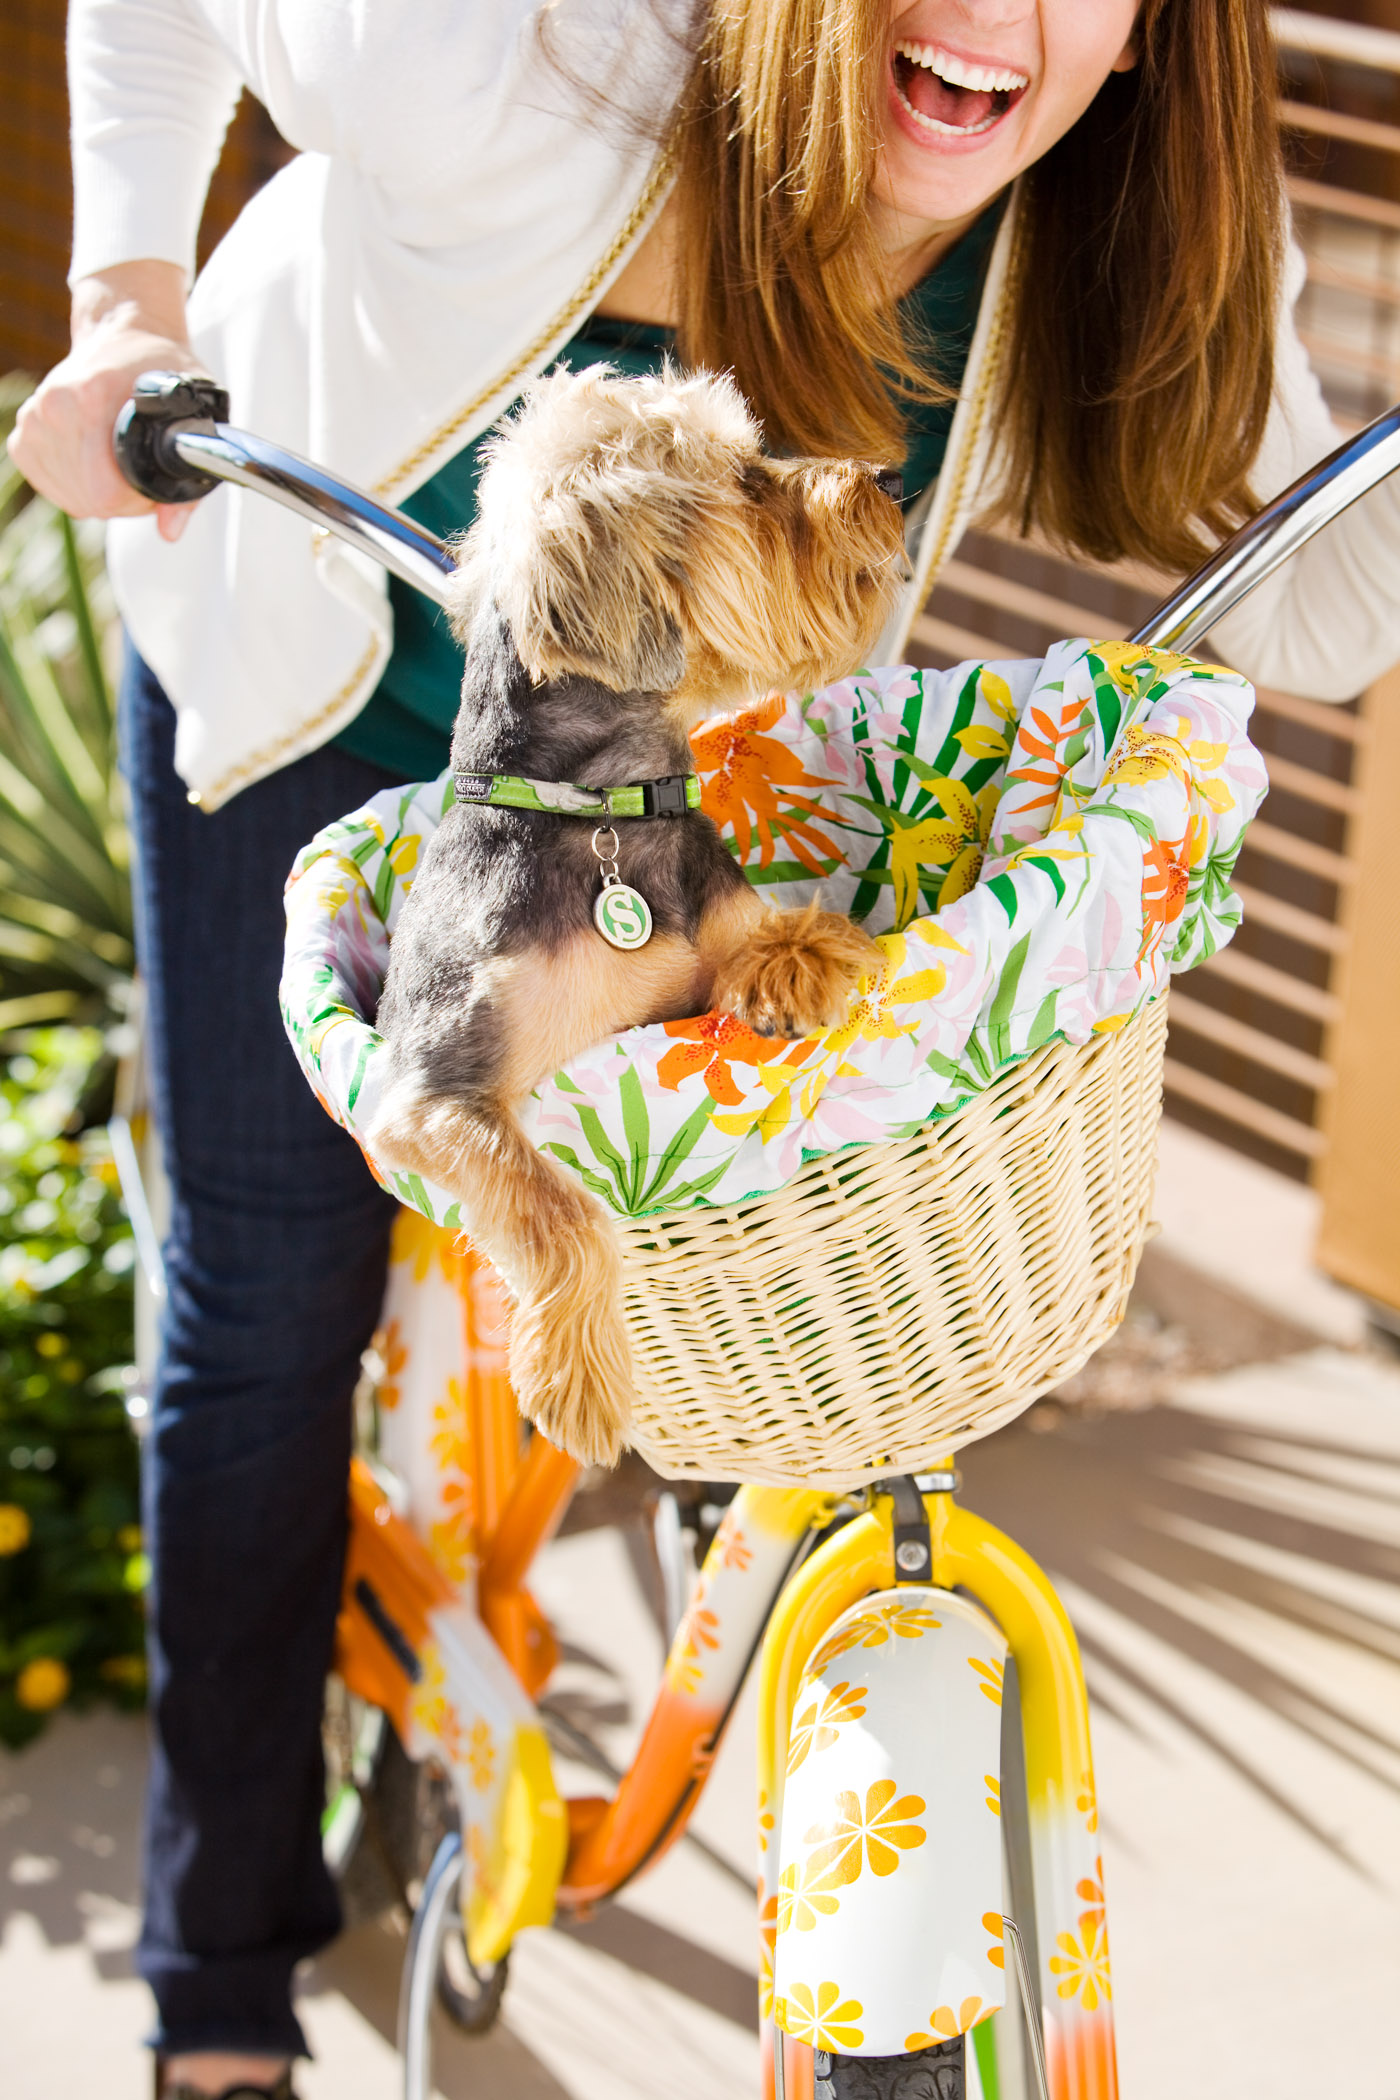 Puppy in a Bike Basket